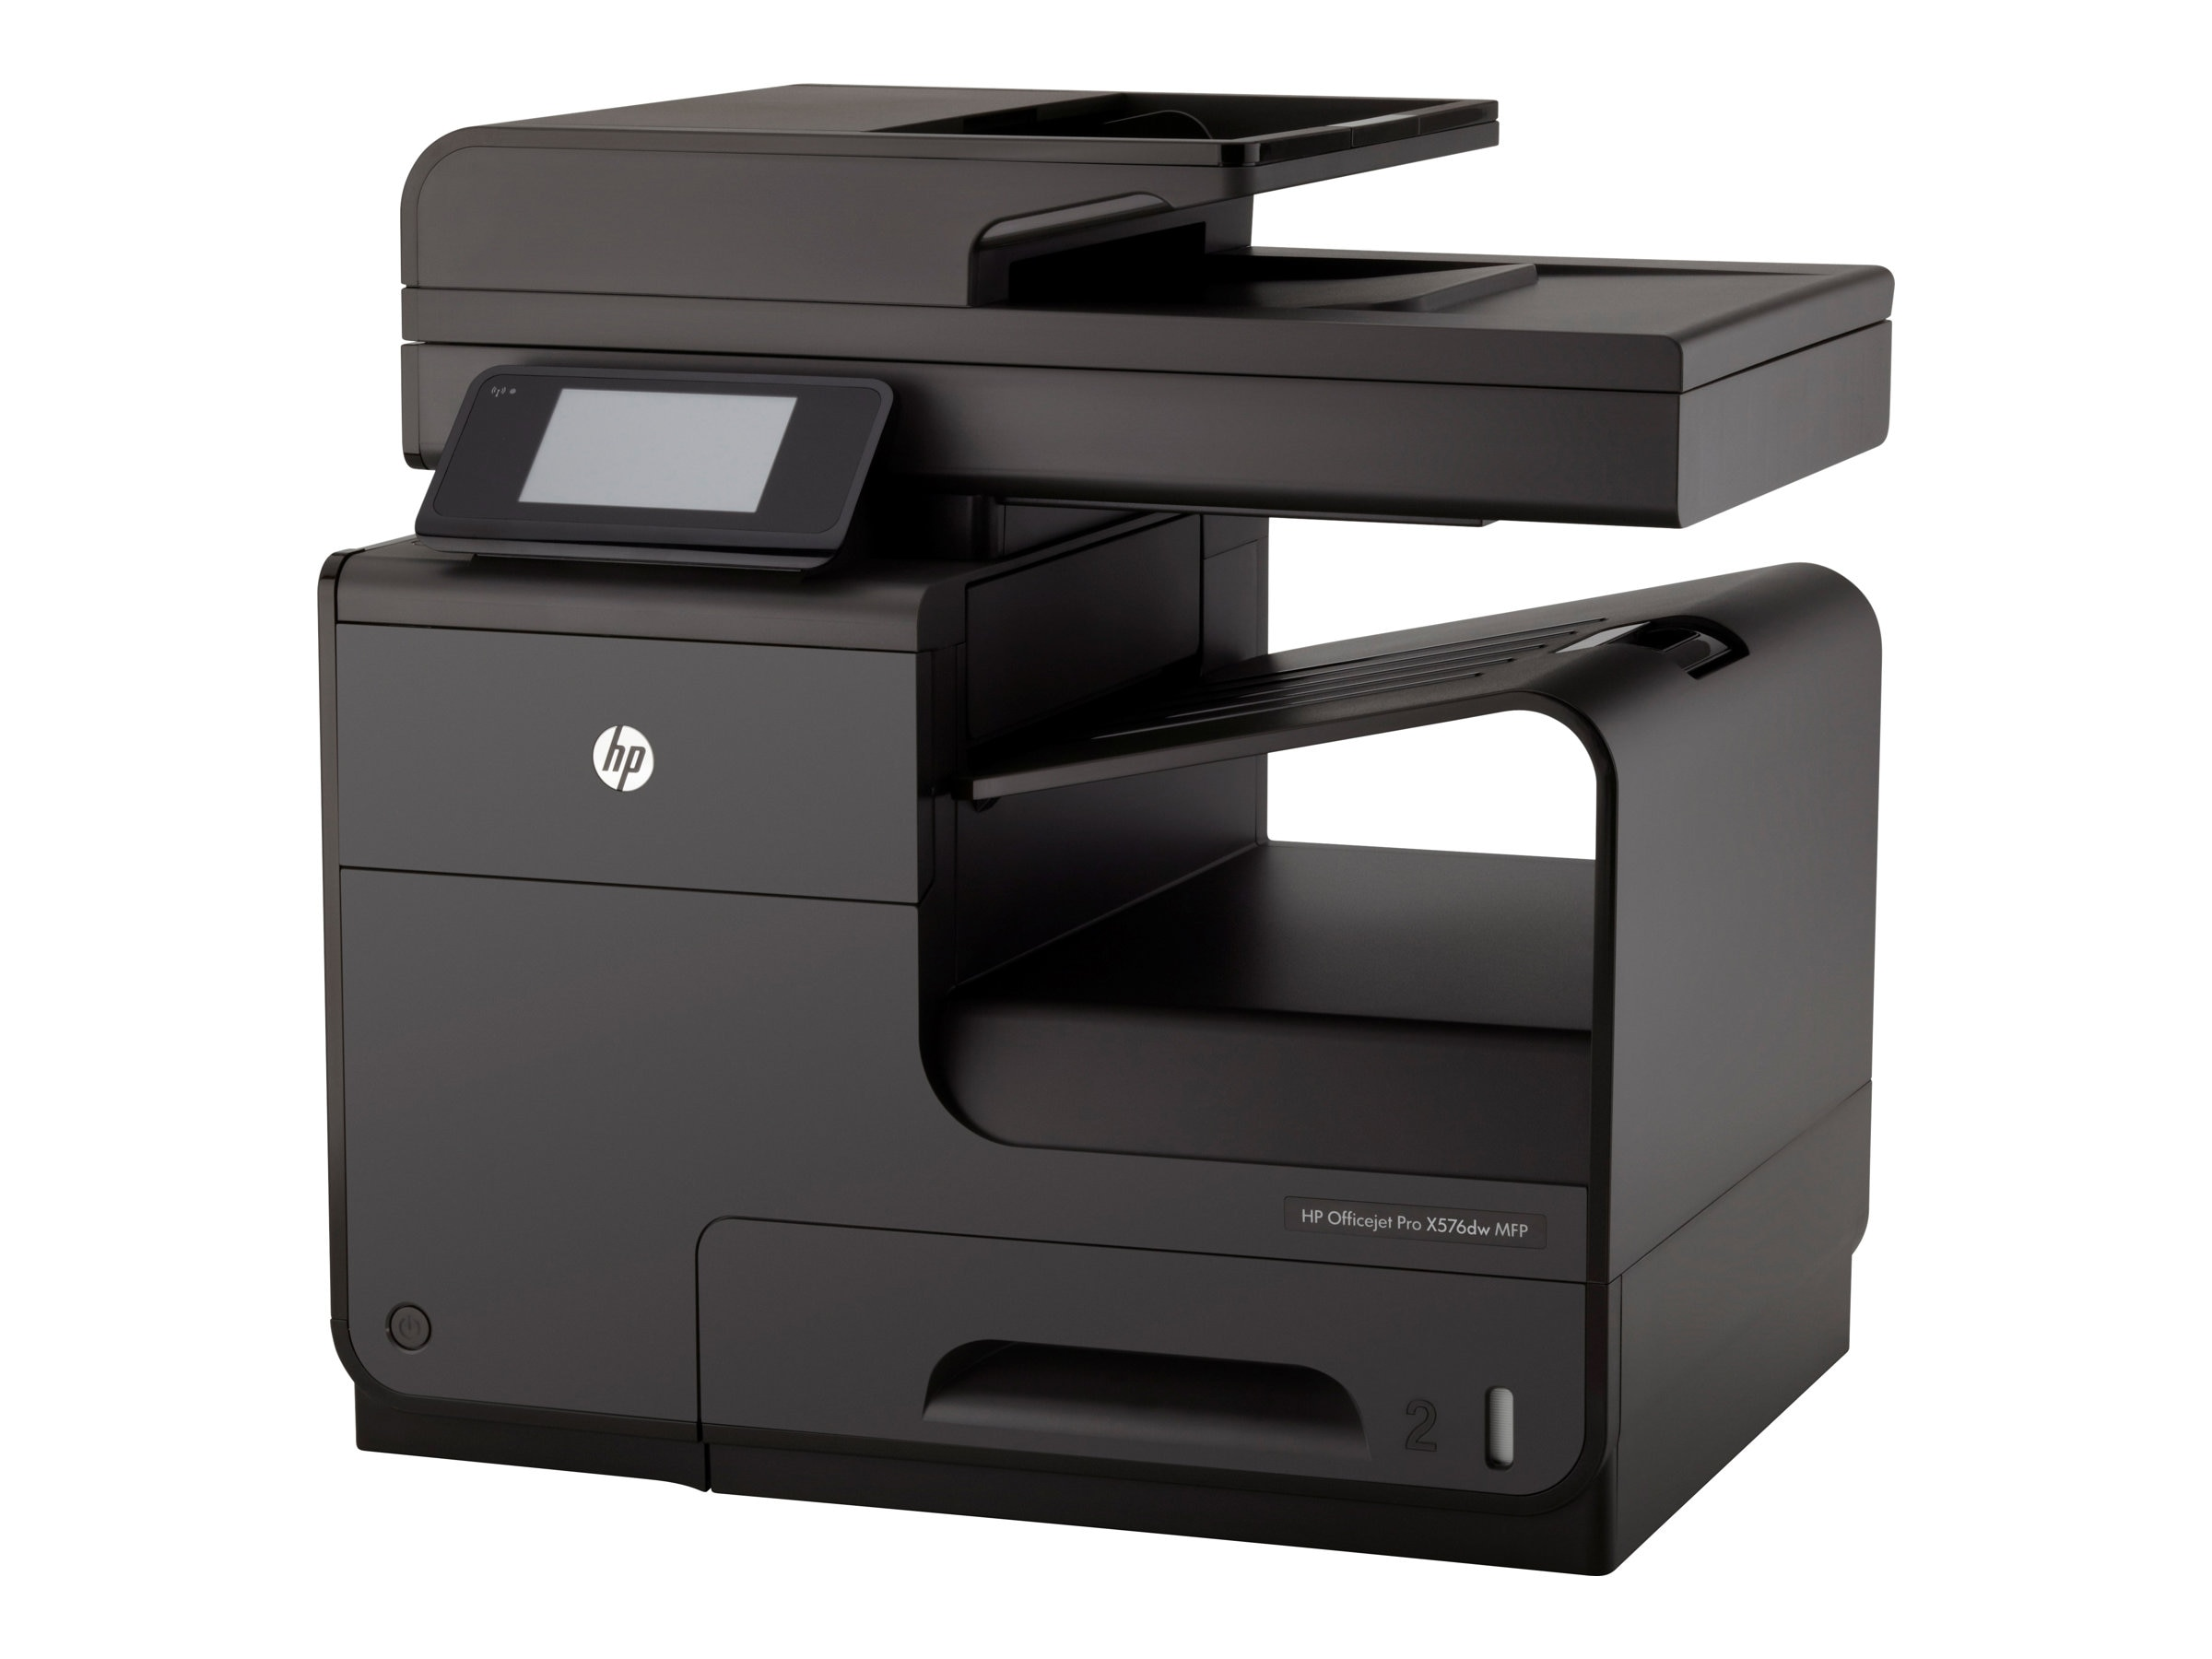 HP Officejet Pro X Series X576dw Color MFP $799 - $240 instant rebate = $559 Expires 2 29 16